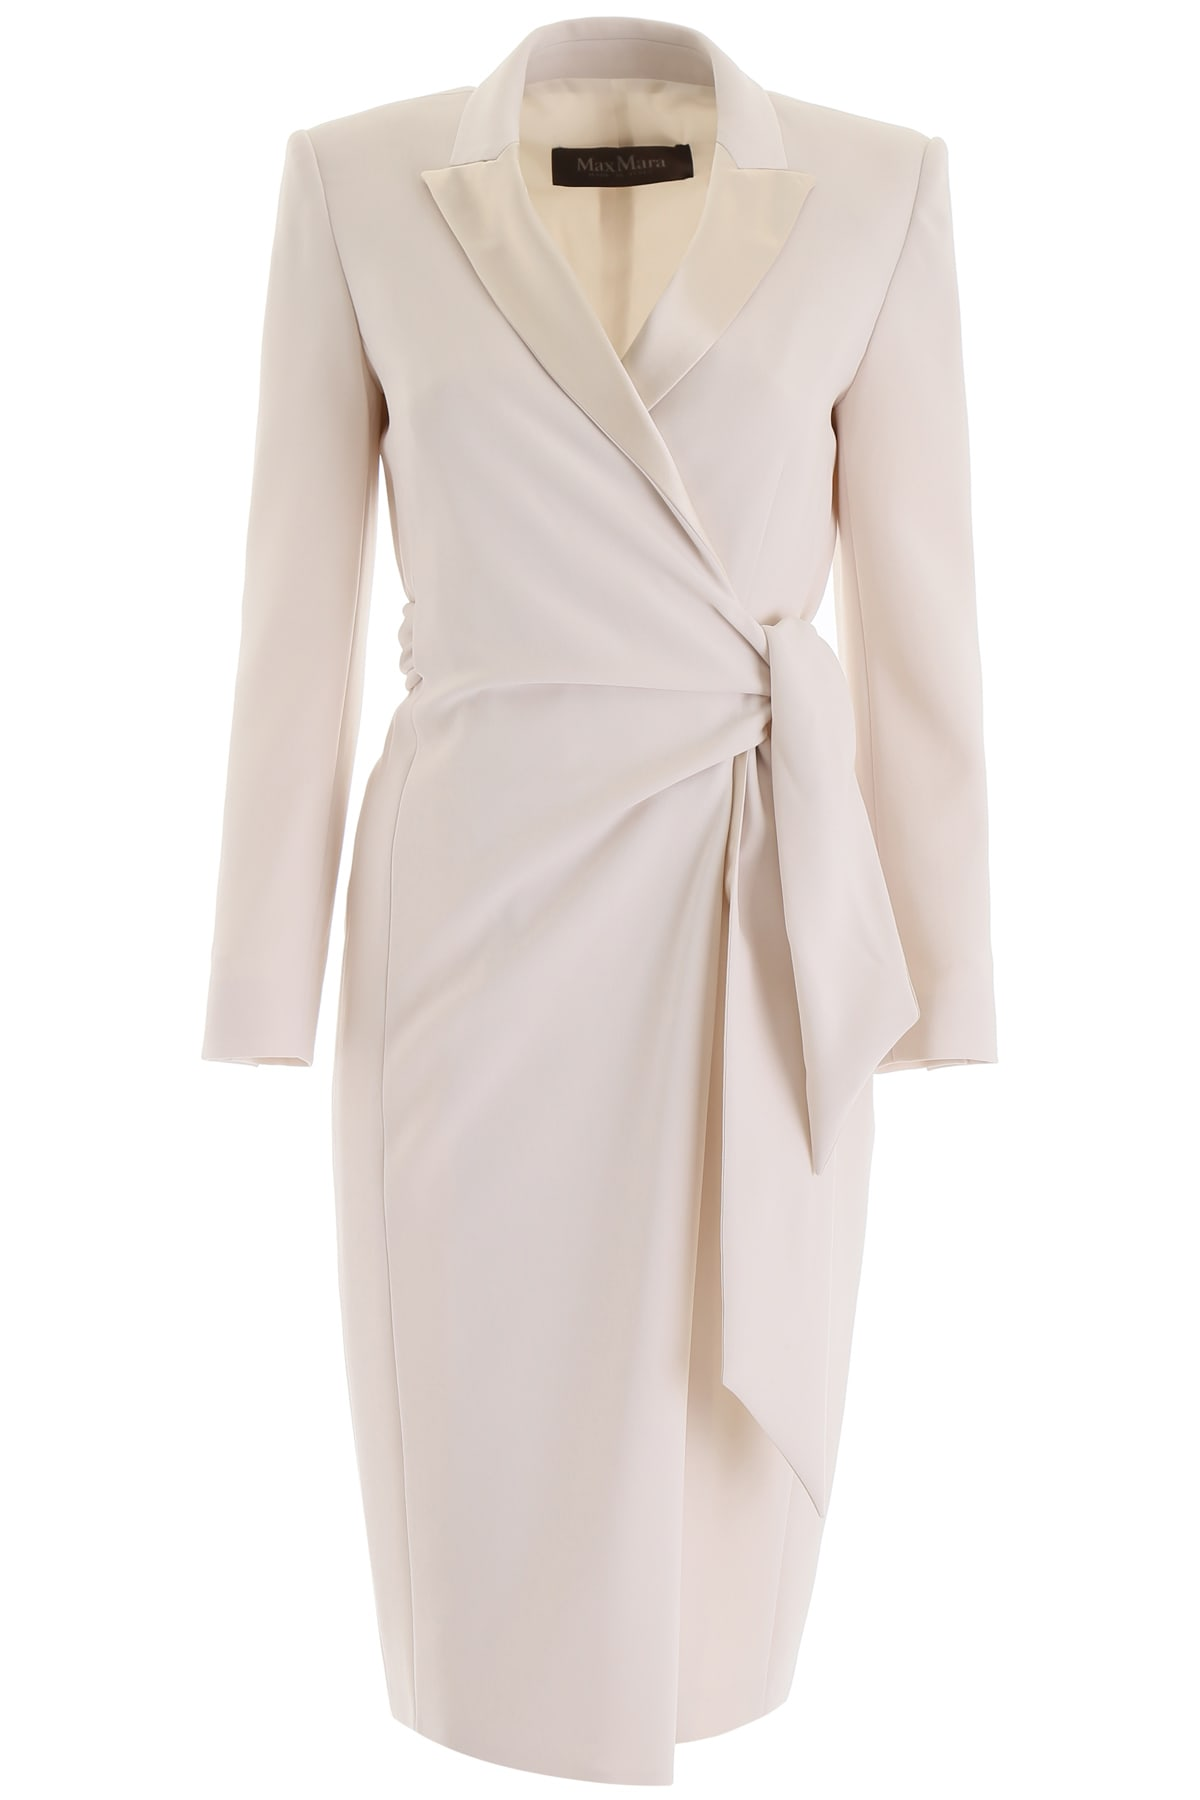 Max Mara Curve Crepe Dress